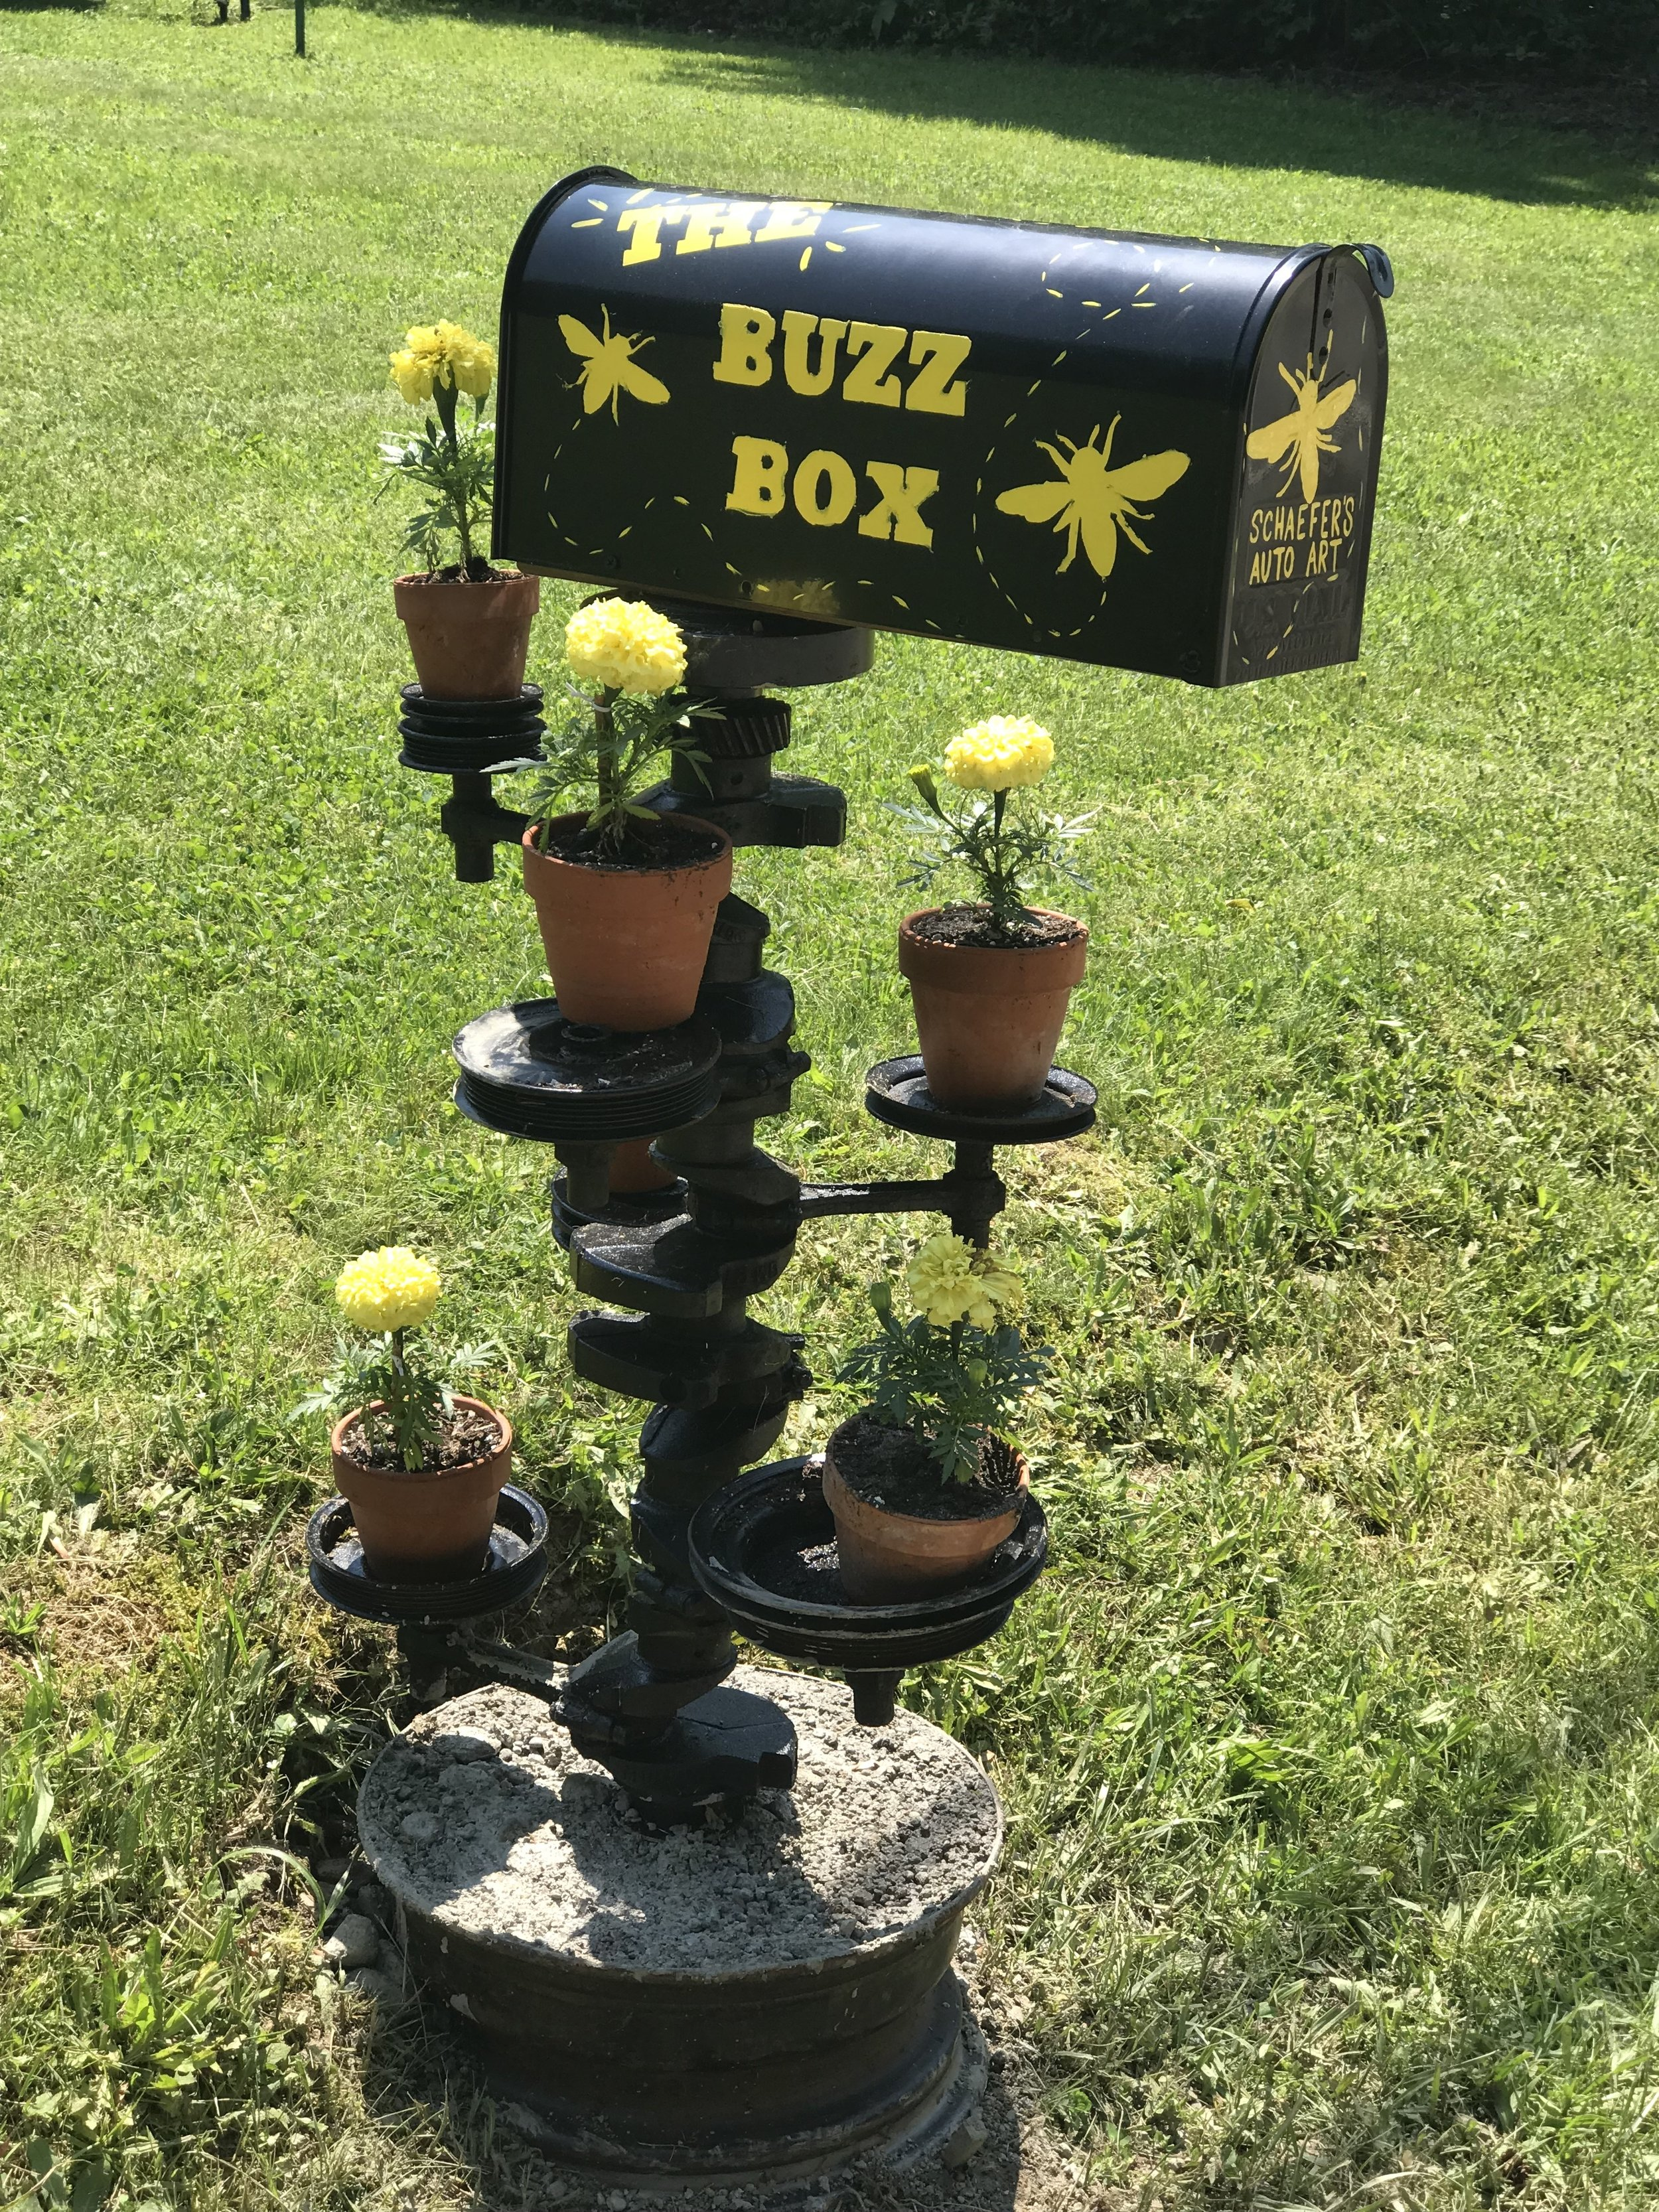 Final setup for The Buzz Box at Schaefer's Auto Art.JPG